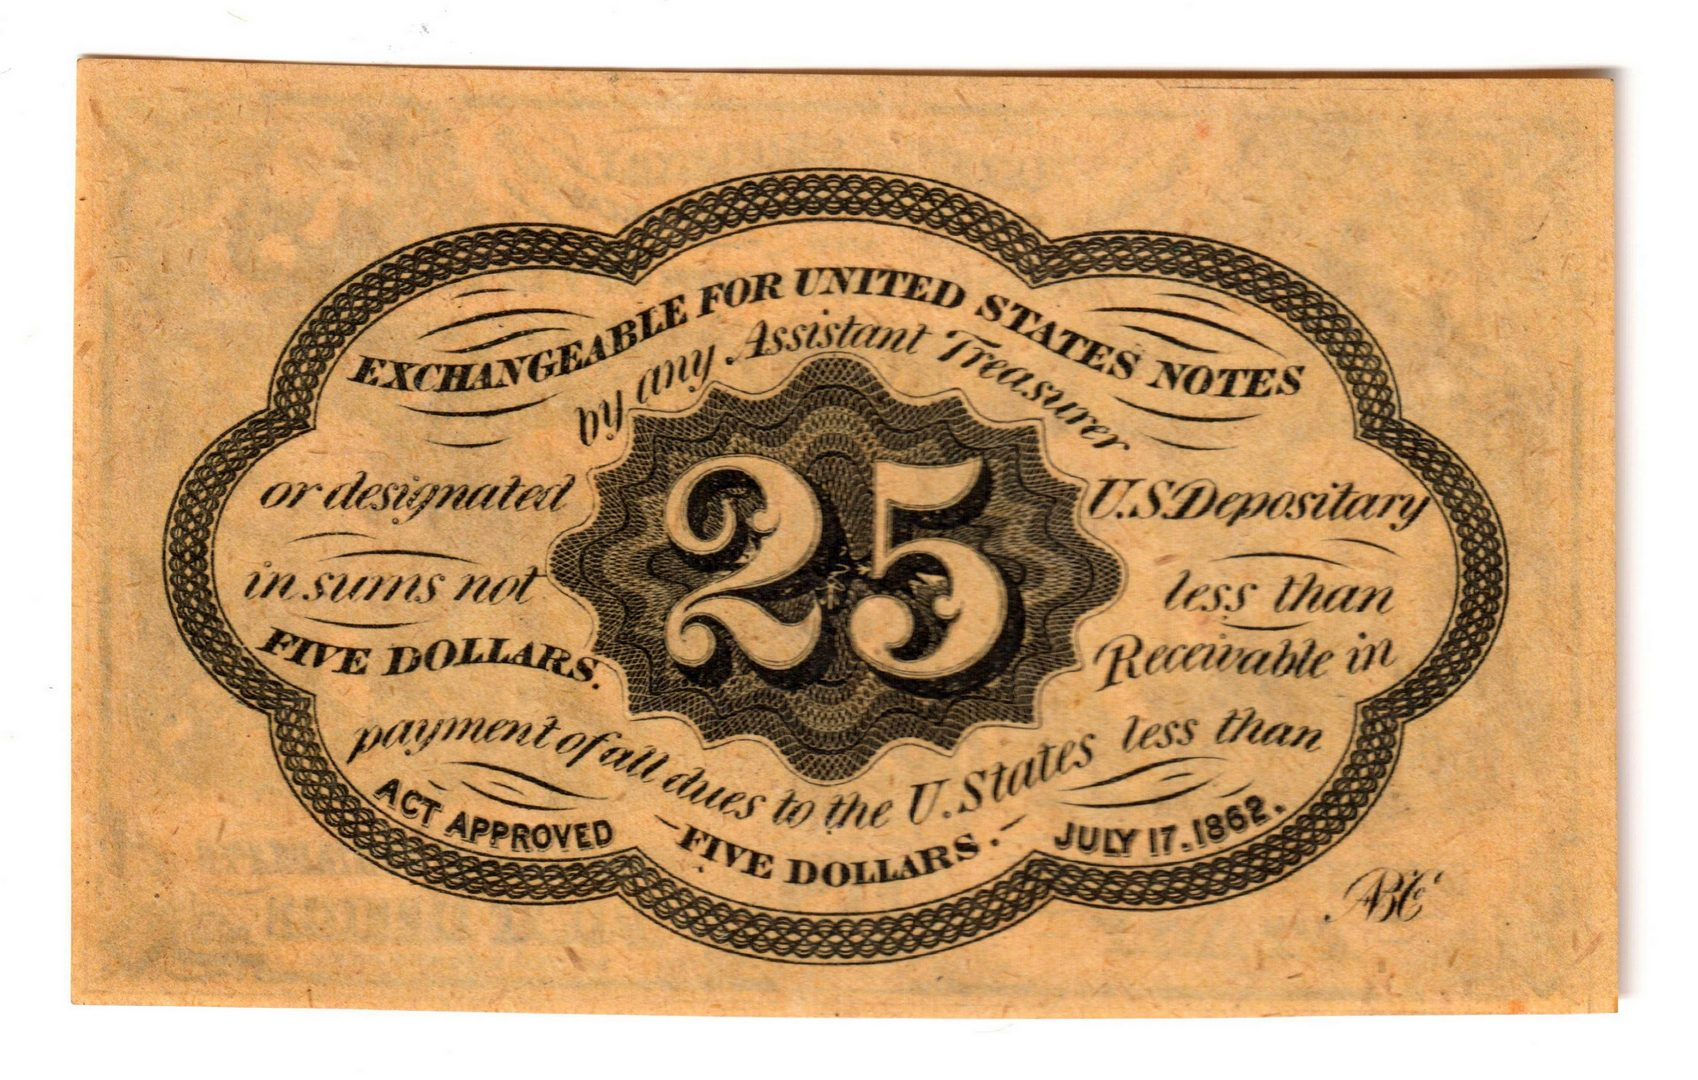 Lot 7: Pair Of 25 Cent U.S. Fractional Banknotes